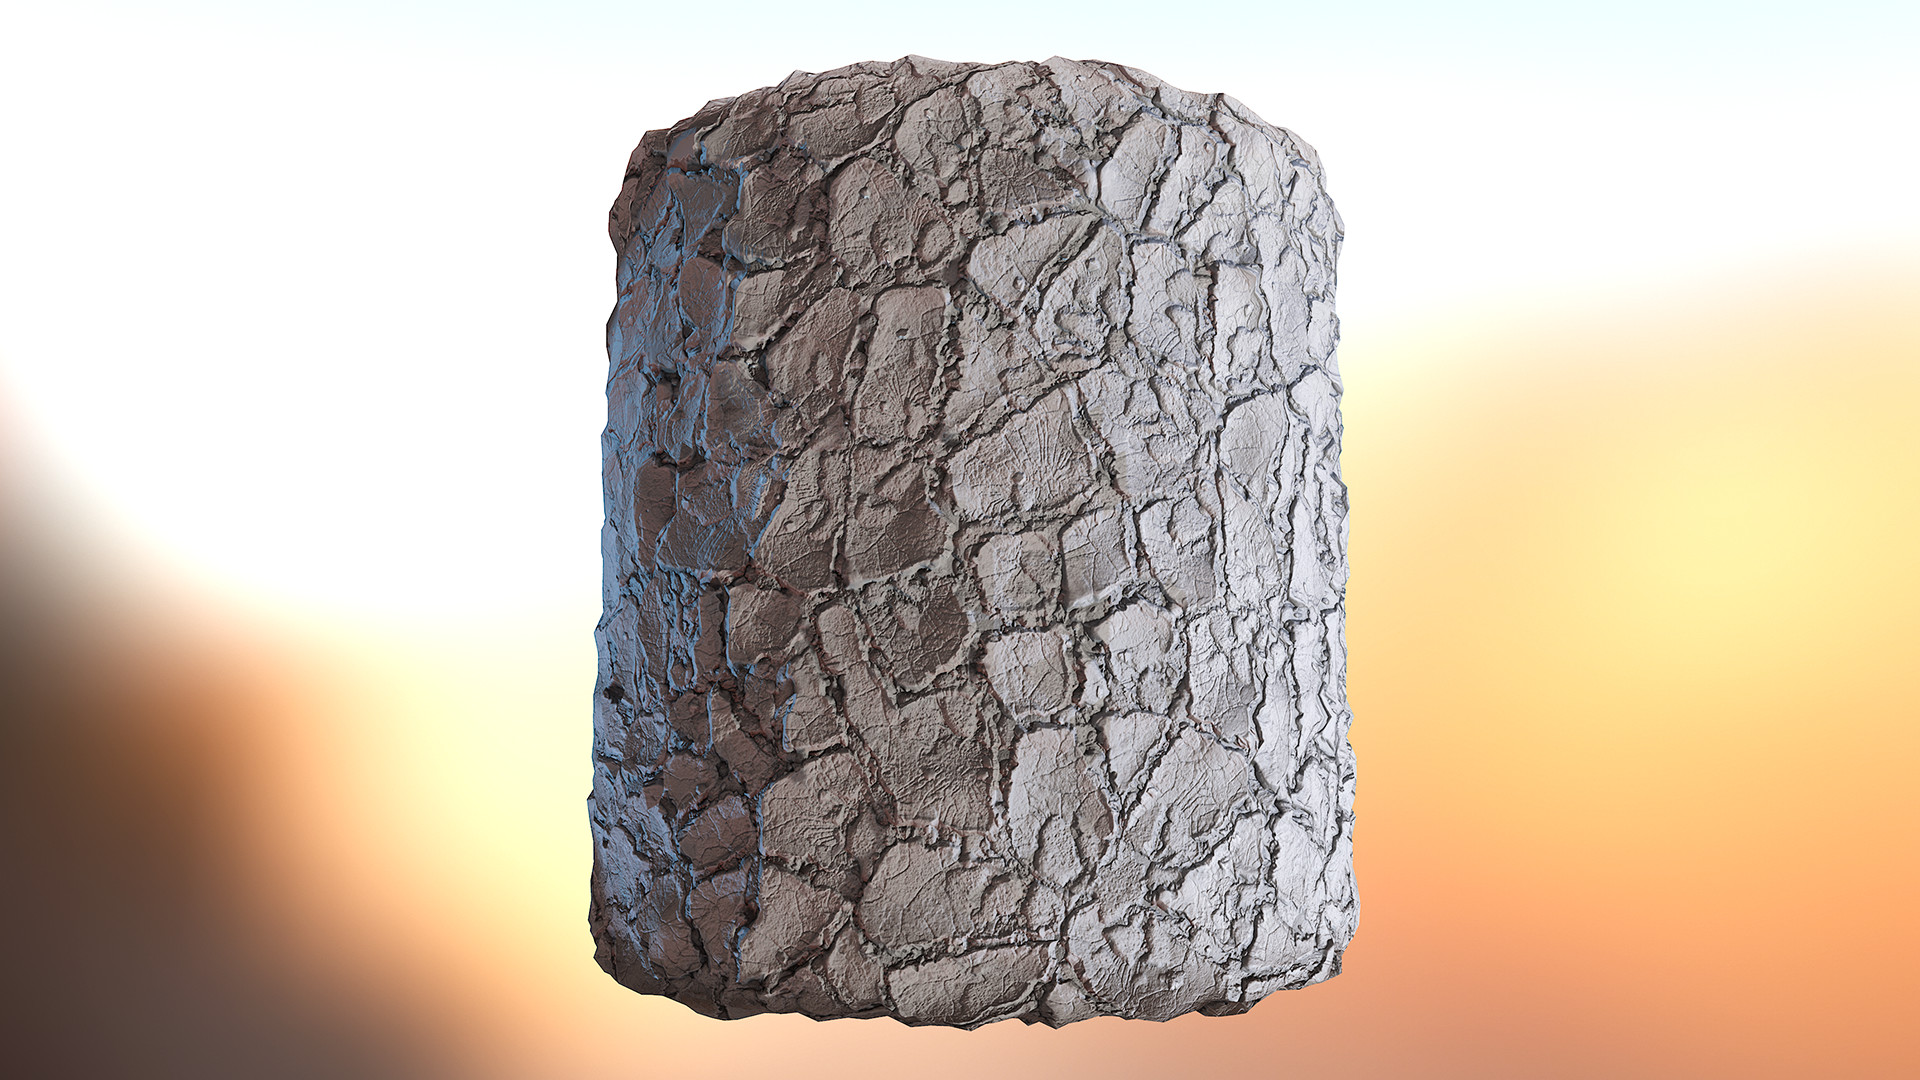 Olle norling dried mud render 4